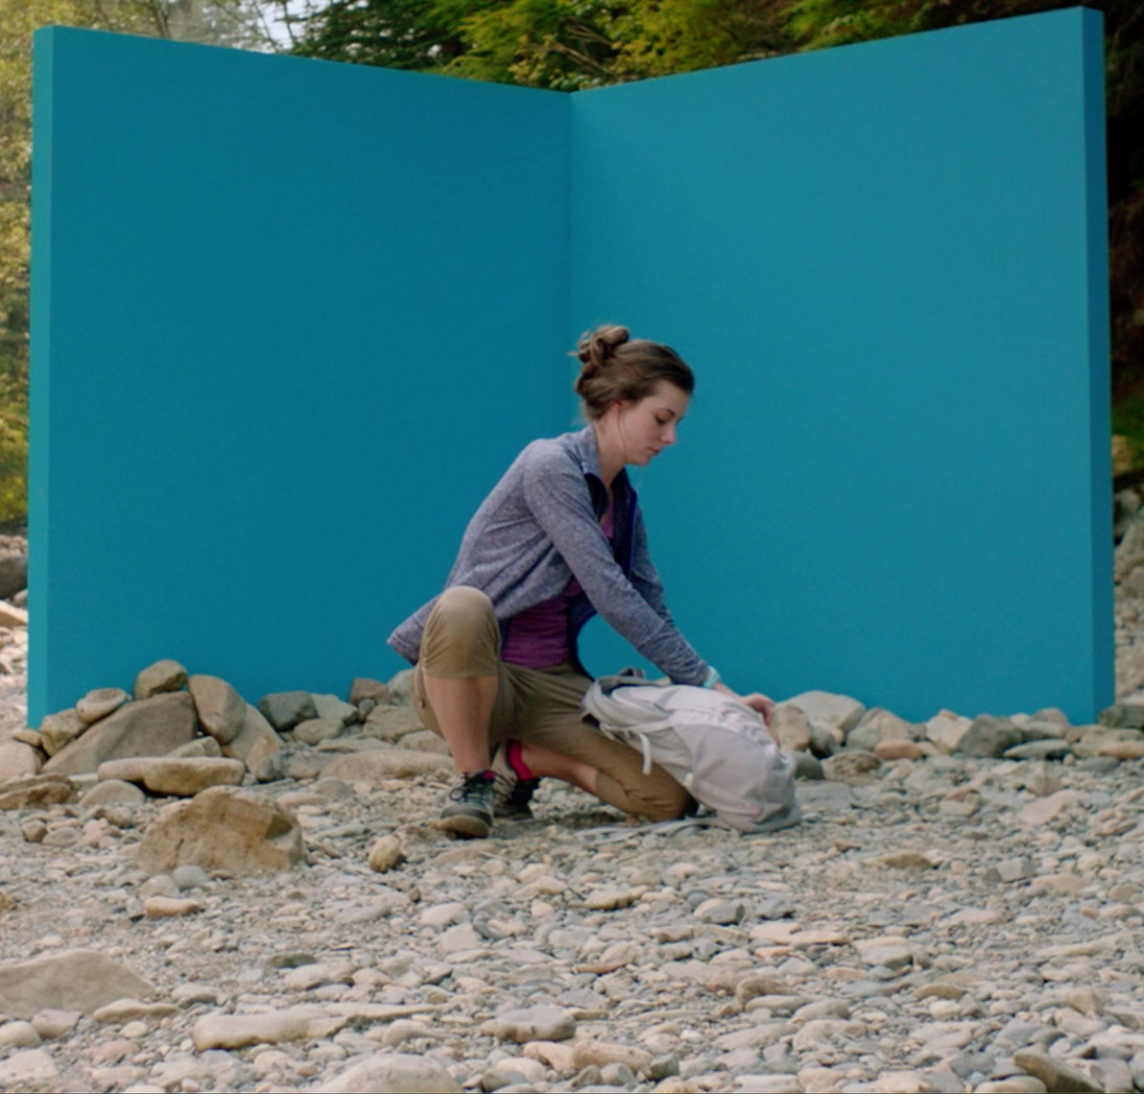 A woman on a hiking trail who stops in front of a five-foot-tall blue corner wall